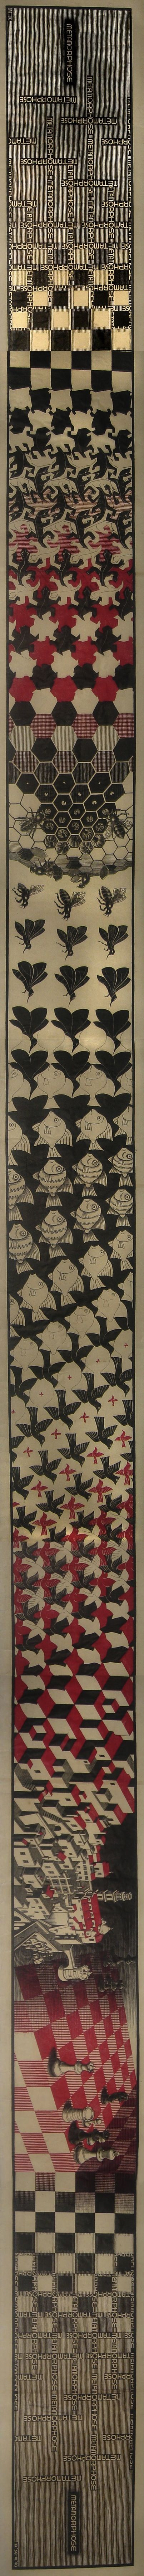 Metamorphosis II by M.C. Escher. ♥ by #GalerieW 2014